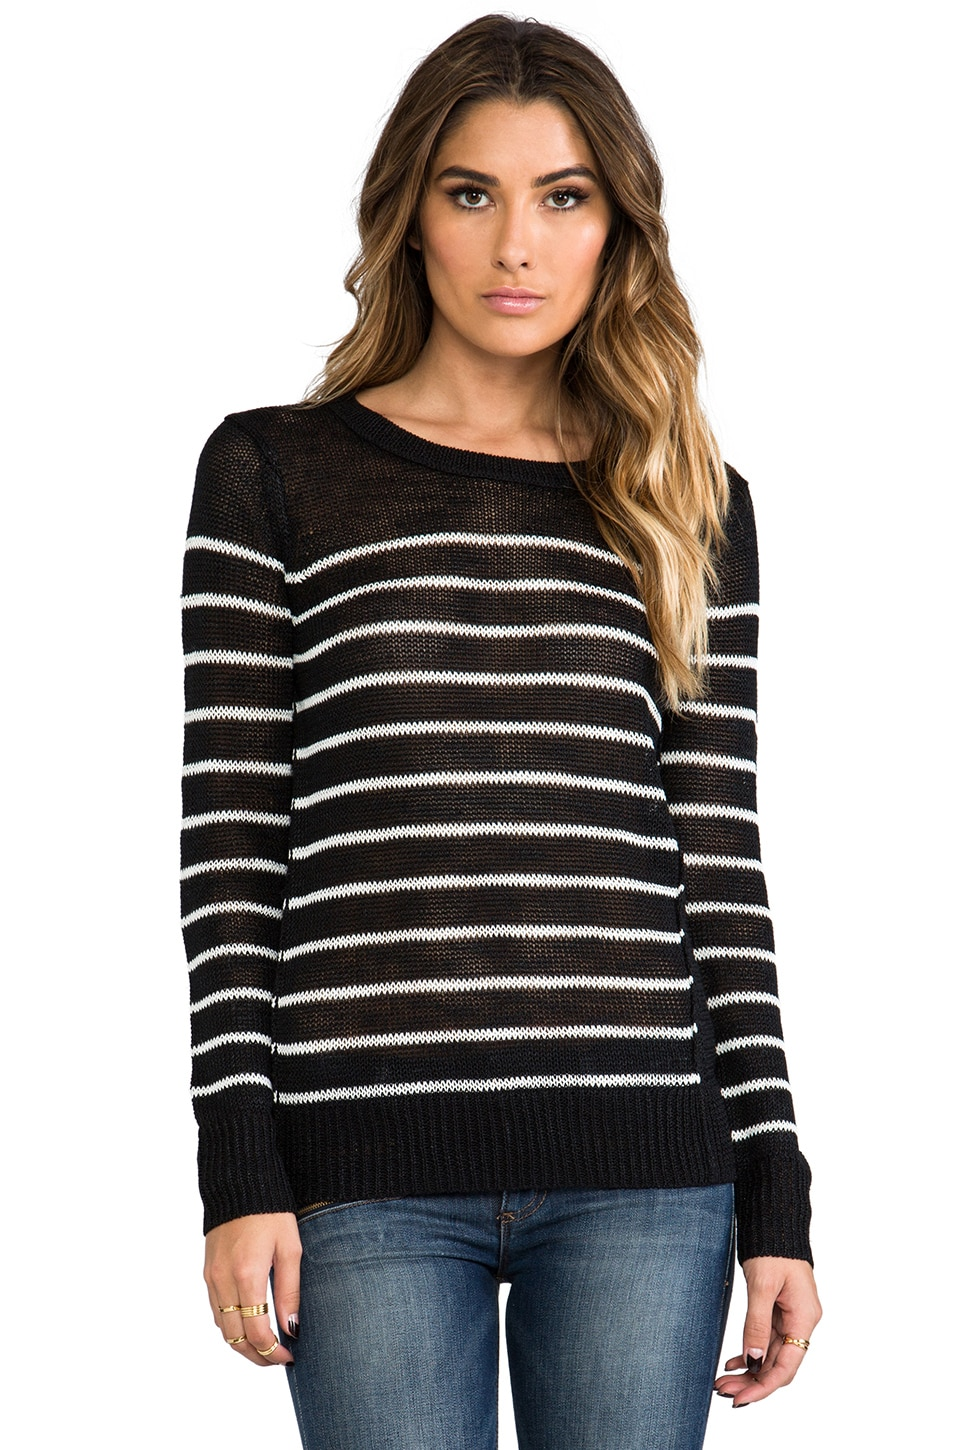 360 Sweater Evie Stripe Sweater in Black & White